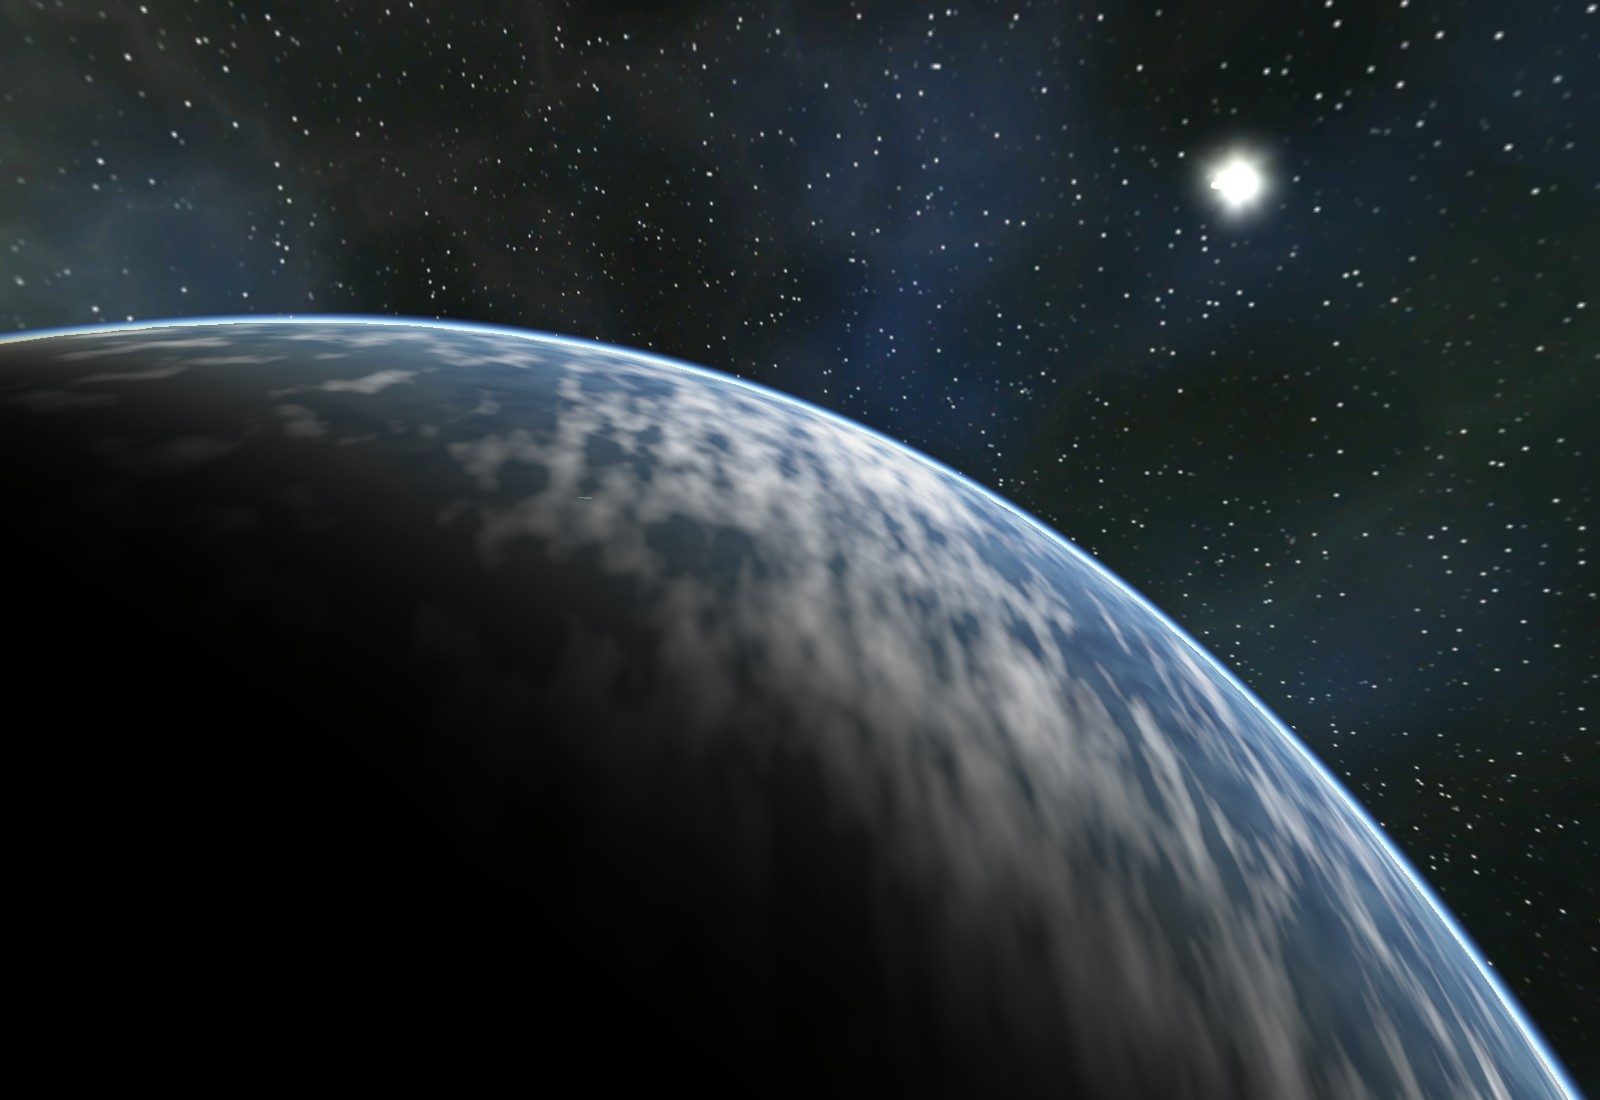 Another view of the atmospheric scattering shader and starfield skybox